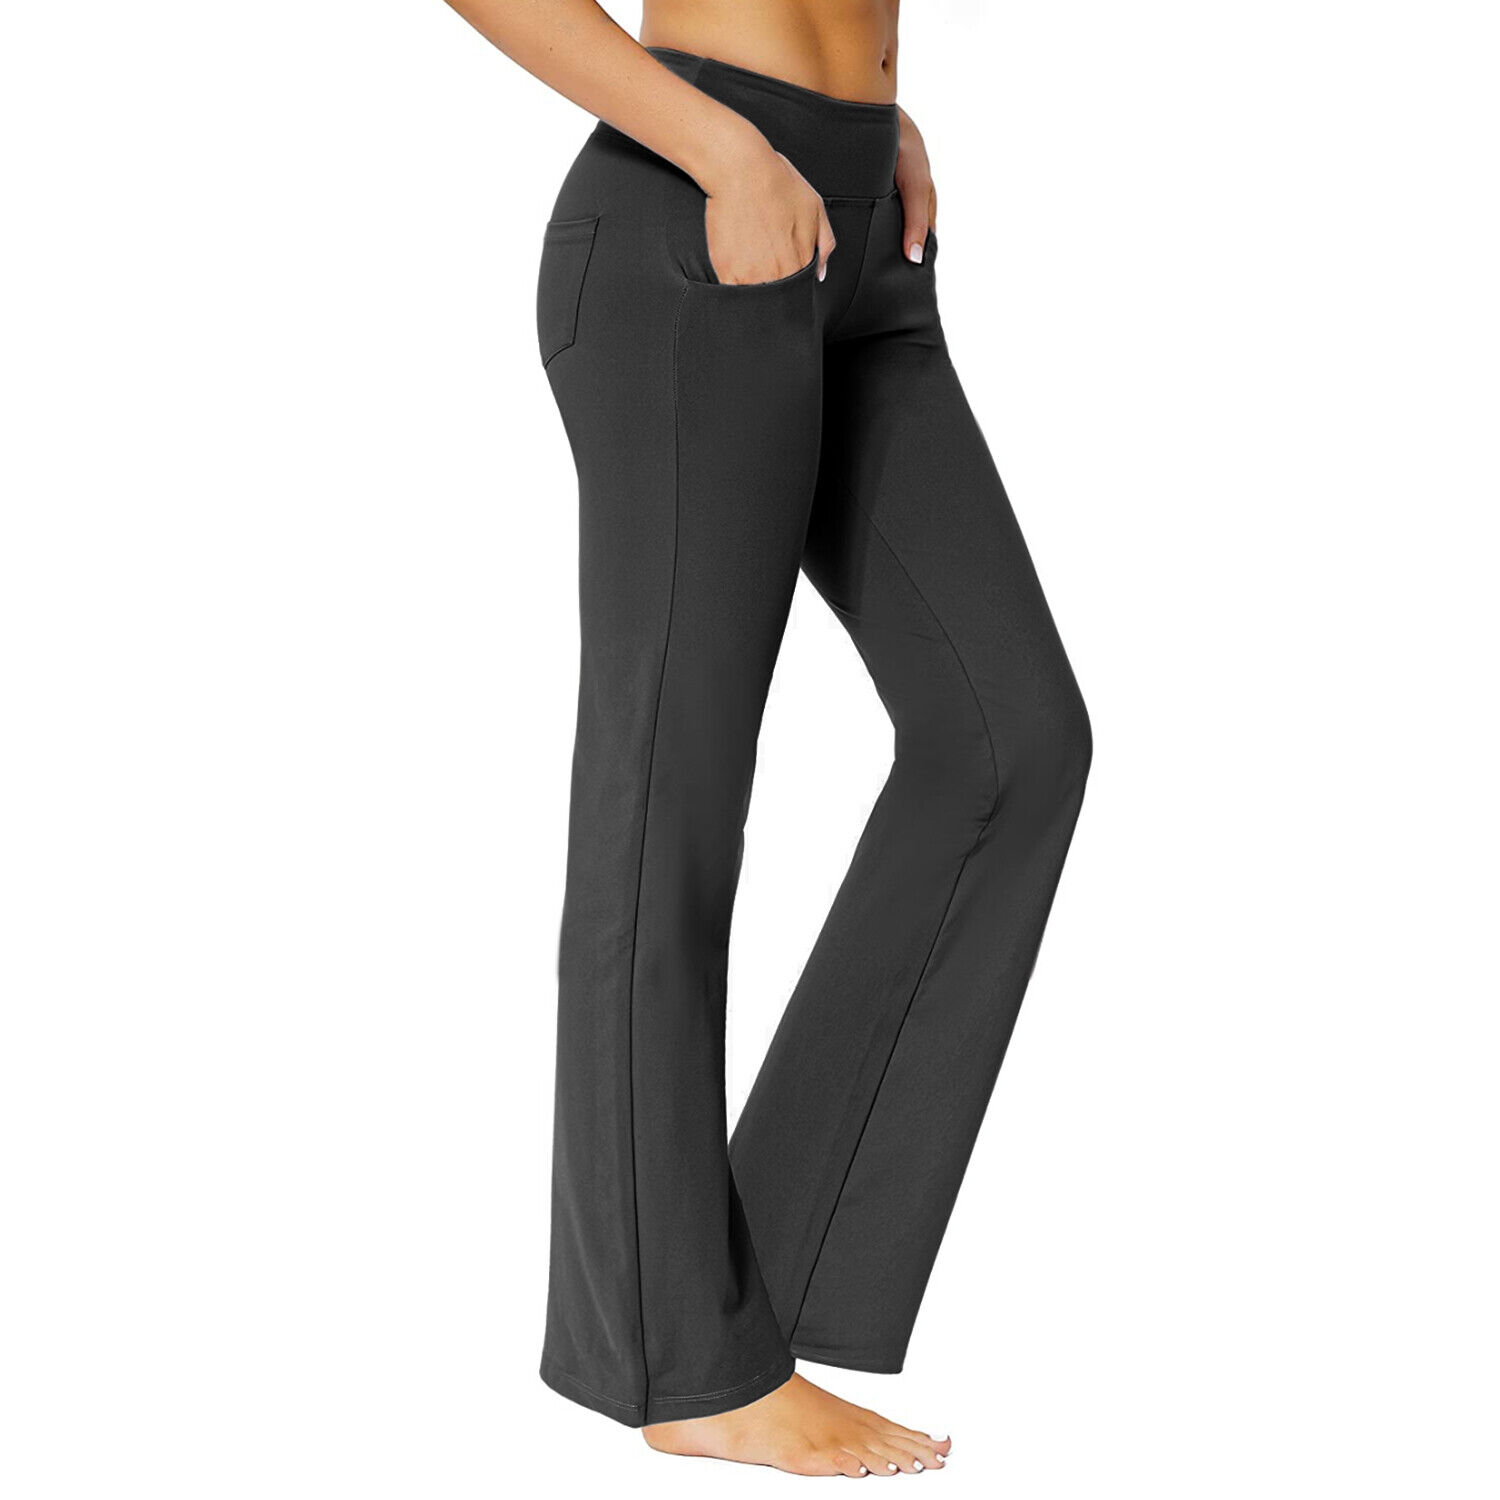 Women's Bootcut Yoga Pants w/ Pockets High Waist Workout Bootleg Flared Leggings Clothing, Shoes & Accessories